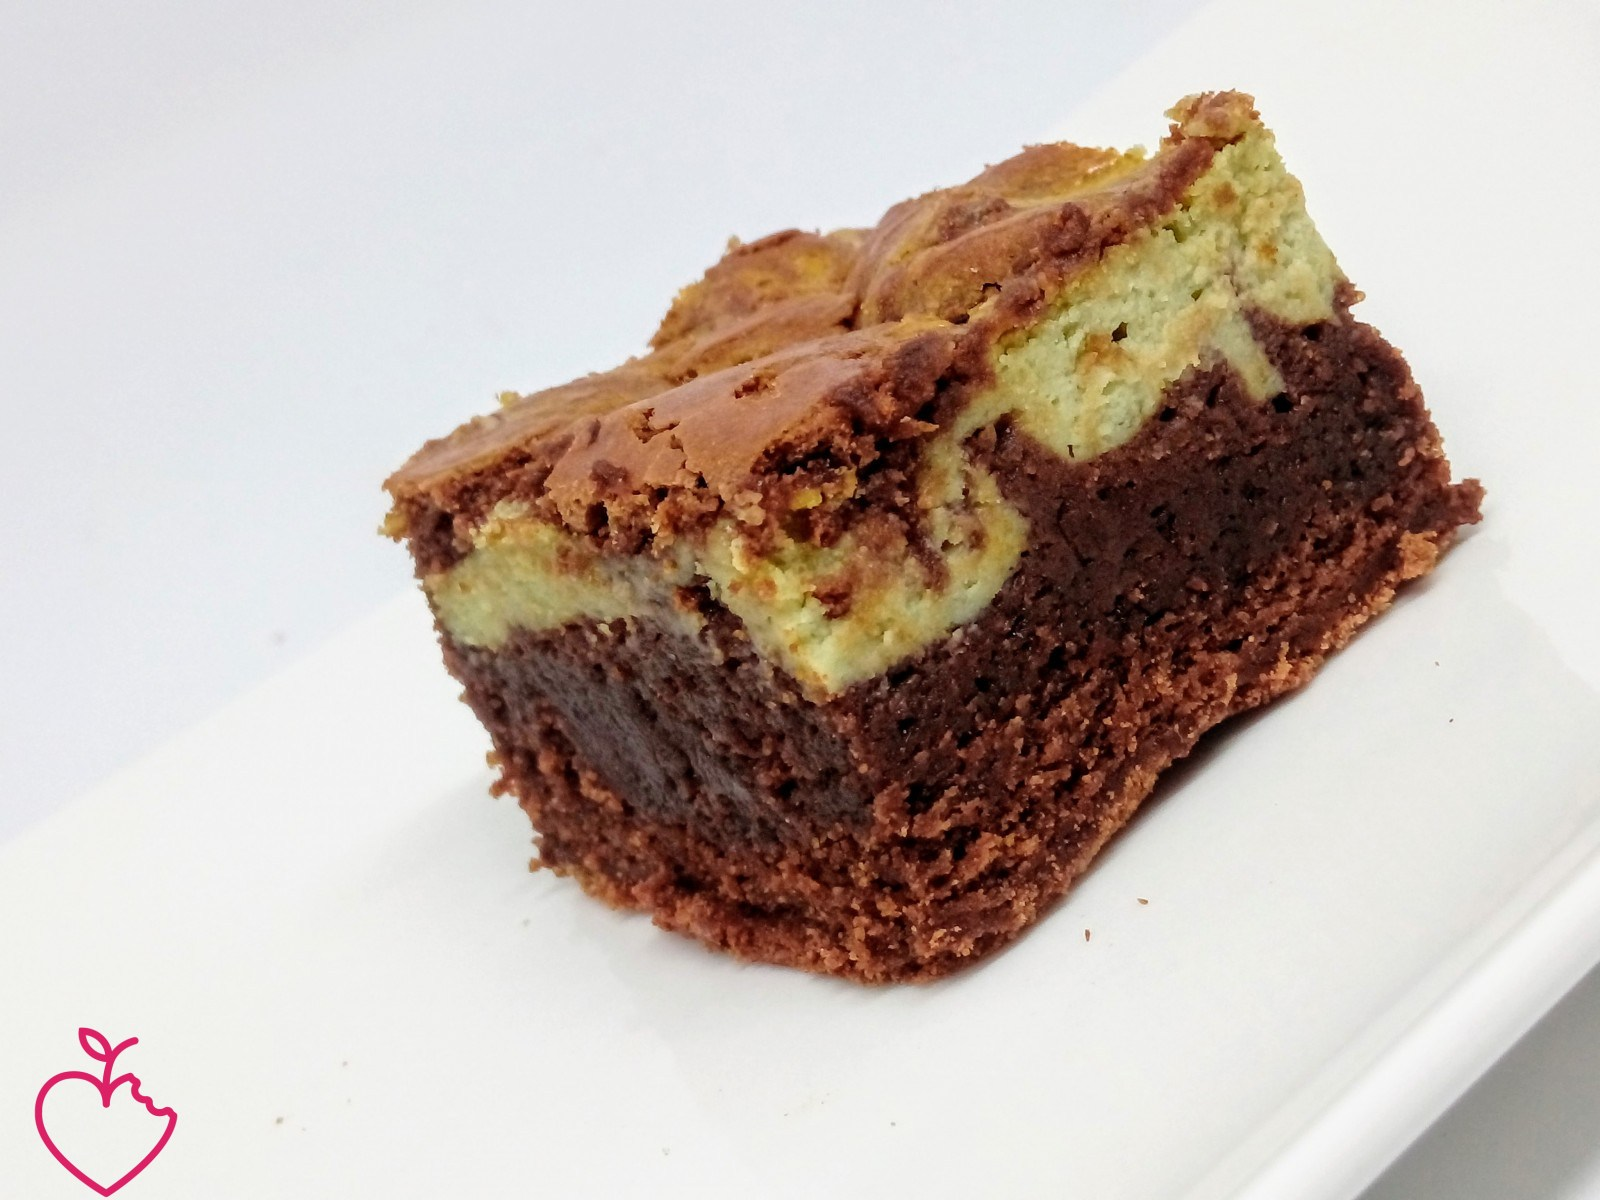 Brownies cheesecake al pistacchio